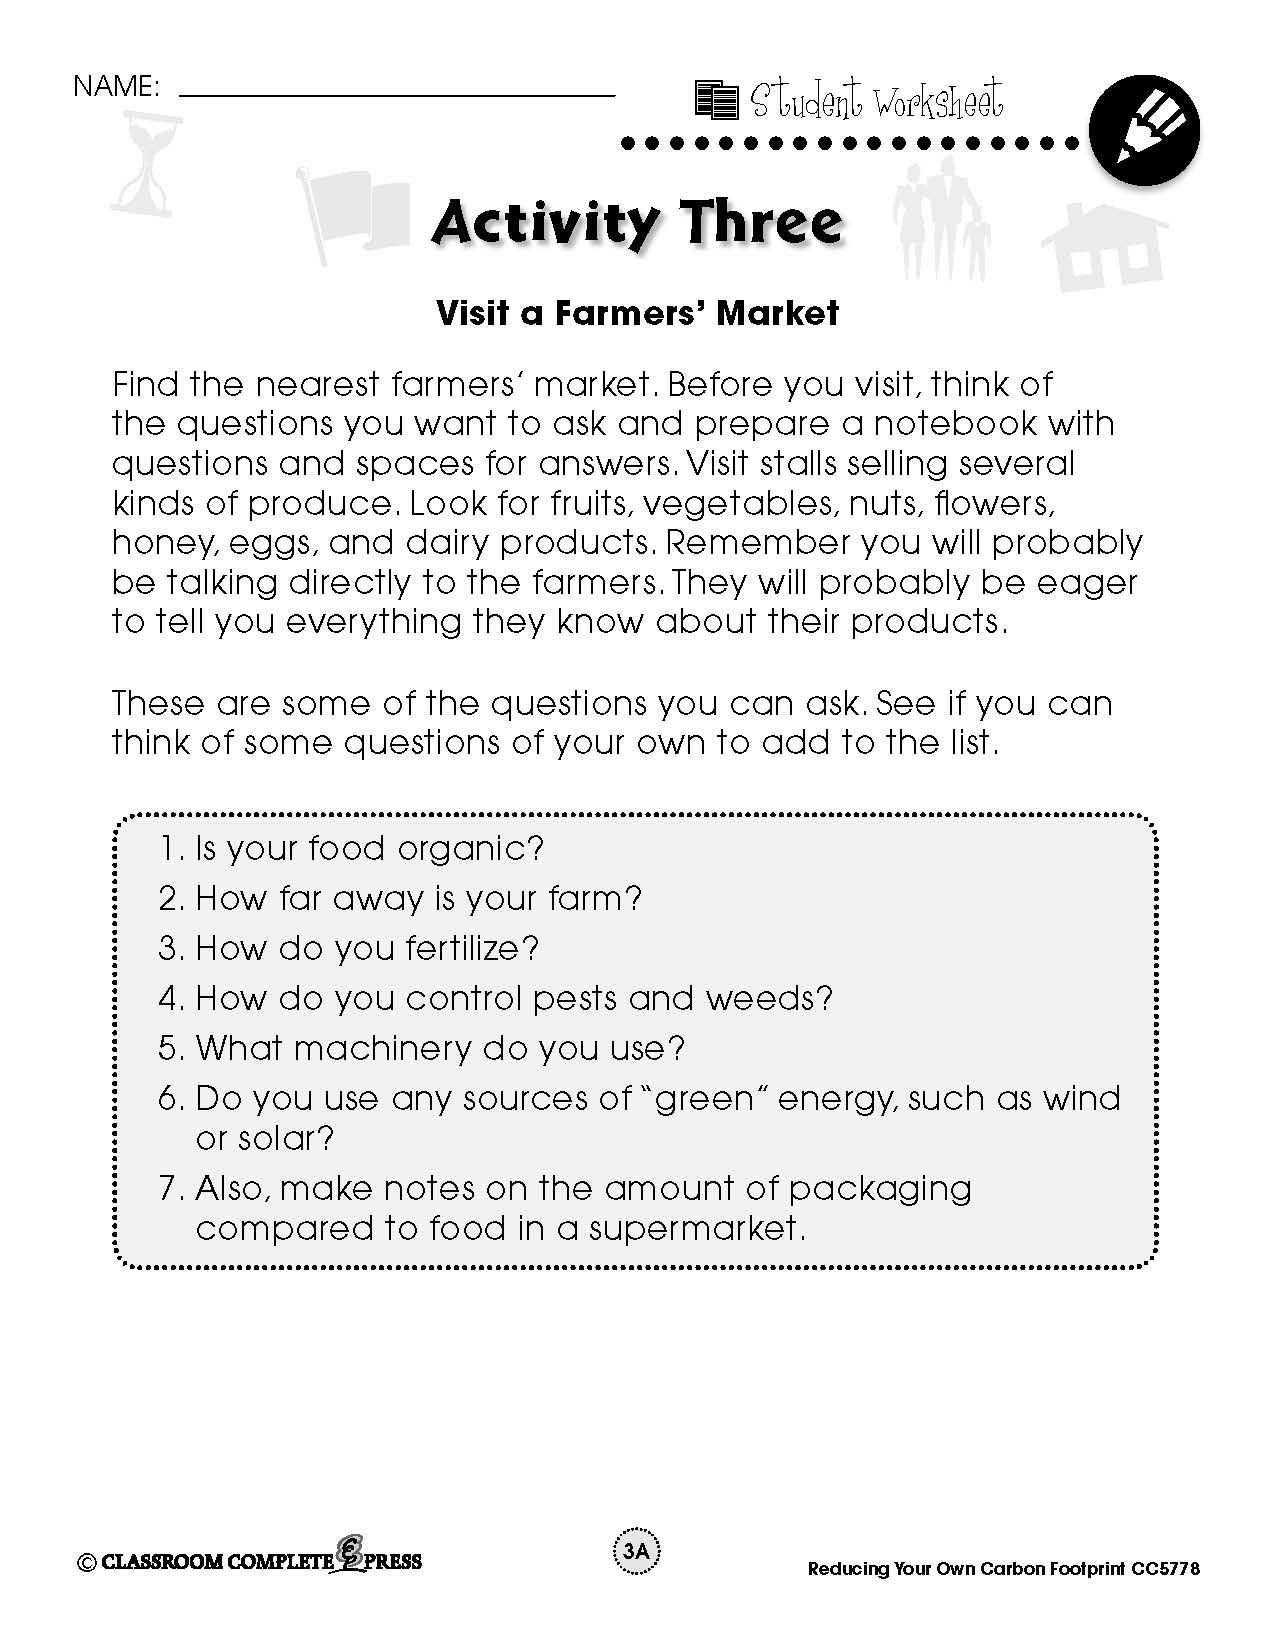 Personal Ecological Footprint Worksheet